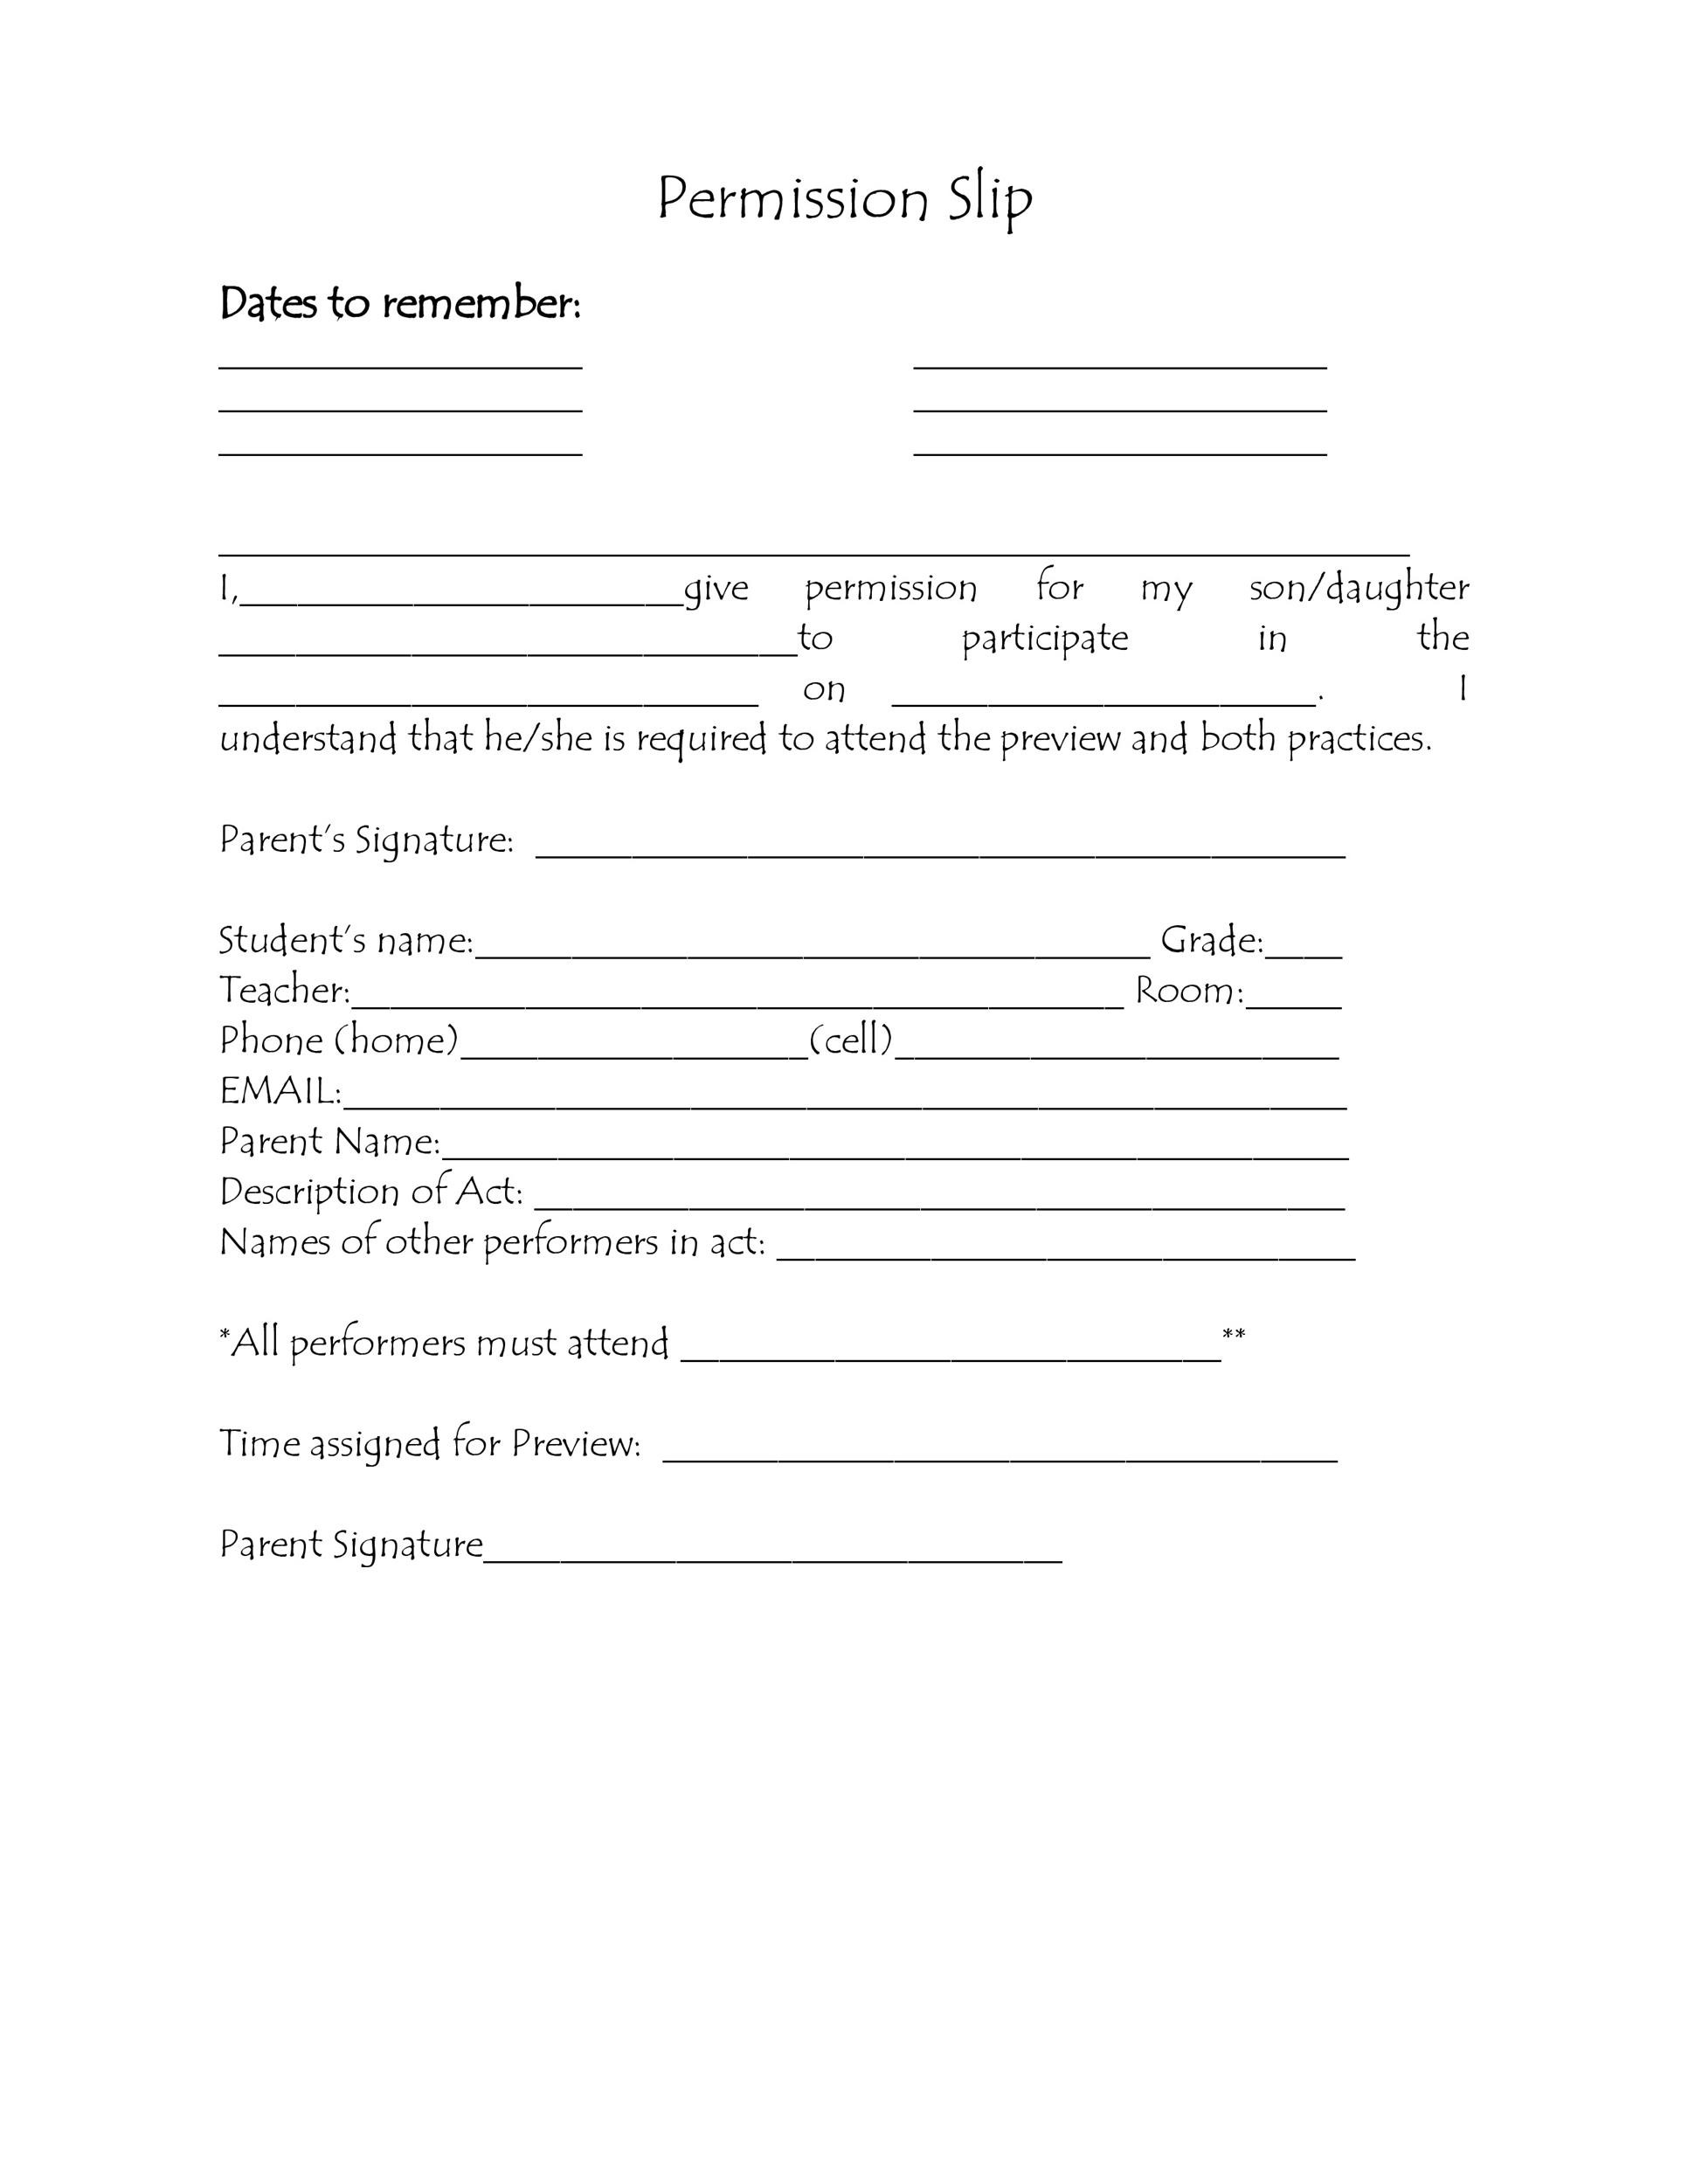 35 Permission Slip Templates \ Field Trip Forms - indemnity form template